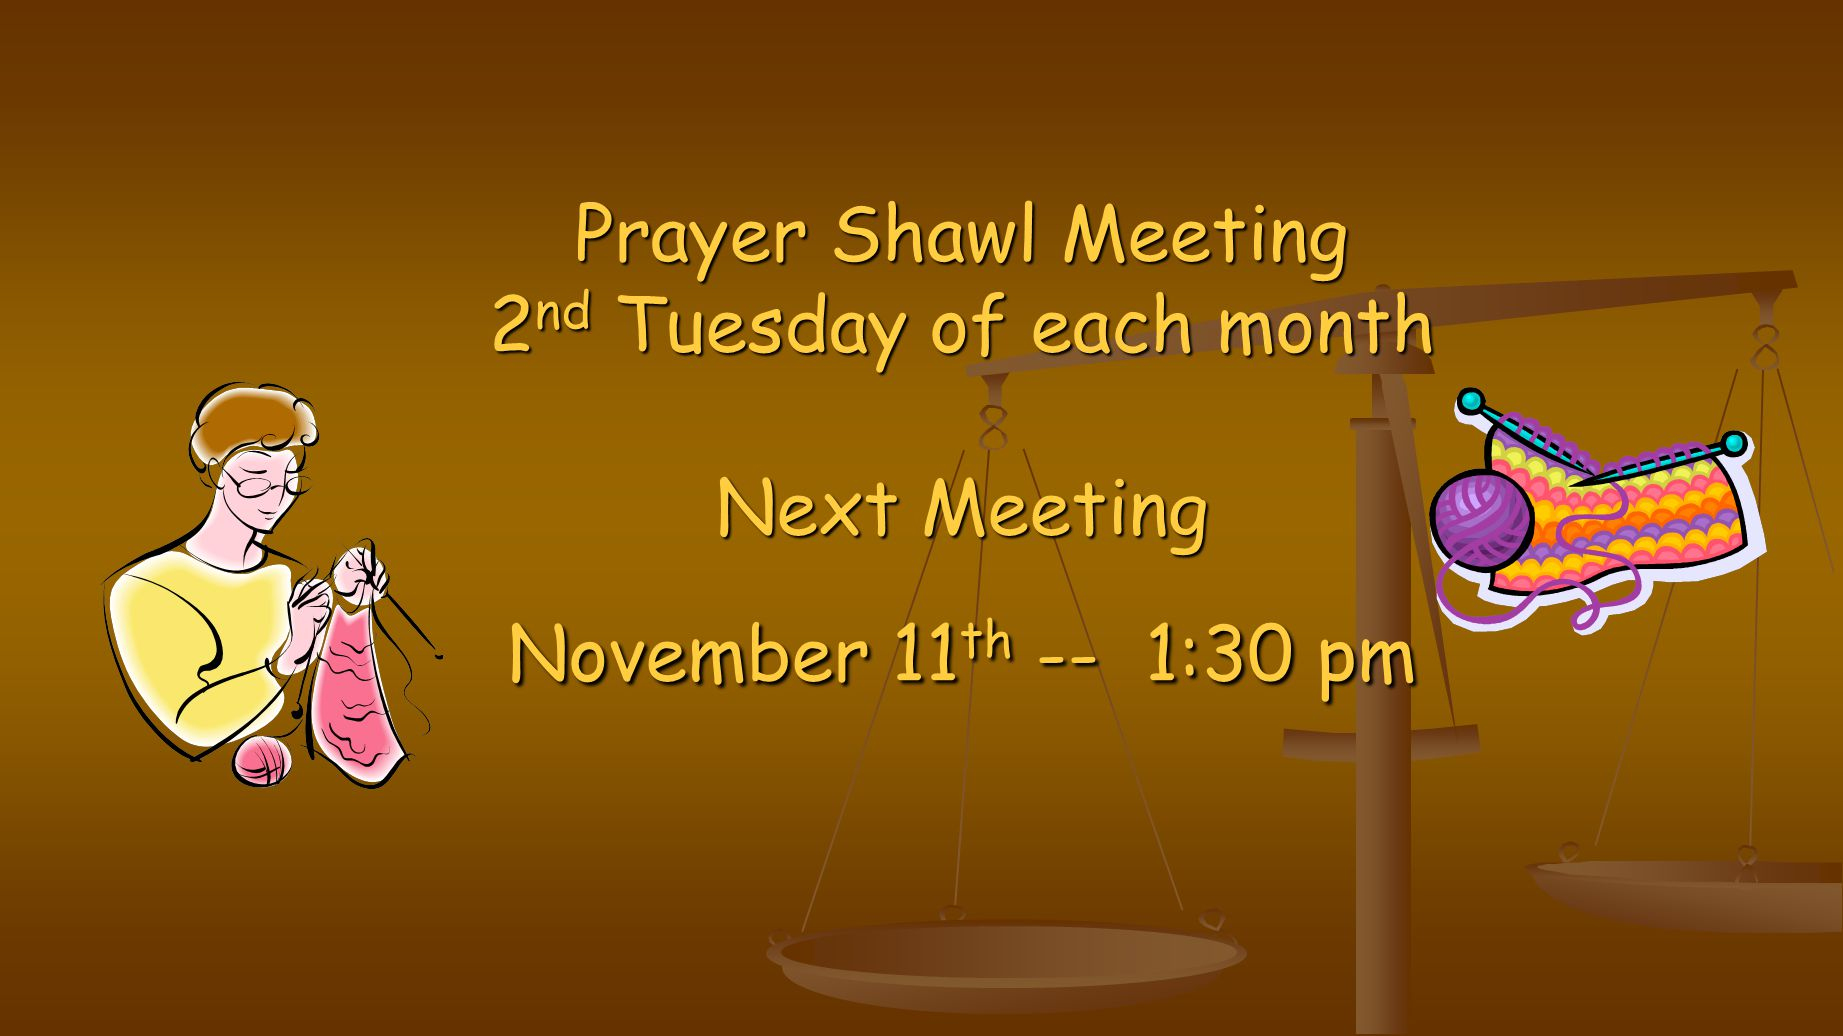 Prayer Shawl Meeting 2 nd Tuesday of each month Prayer Shawl Meeting 2 nd Tuesday of each month Next Meeting November 11 th -- 1:30 pm